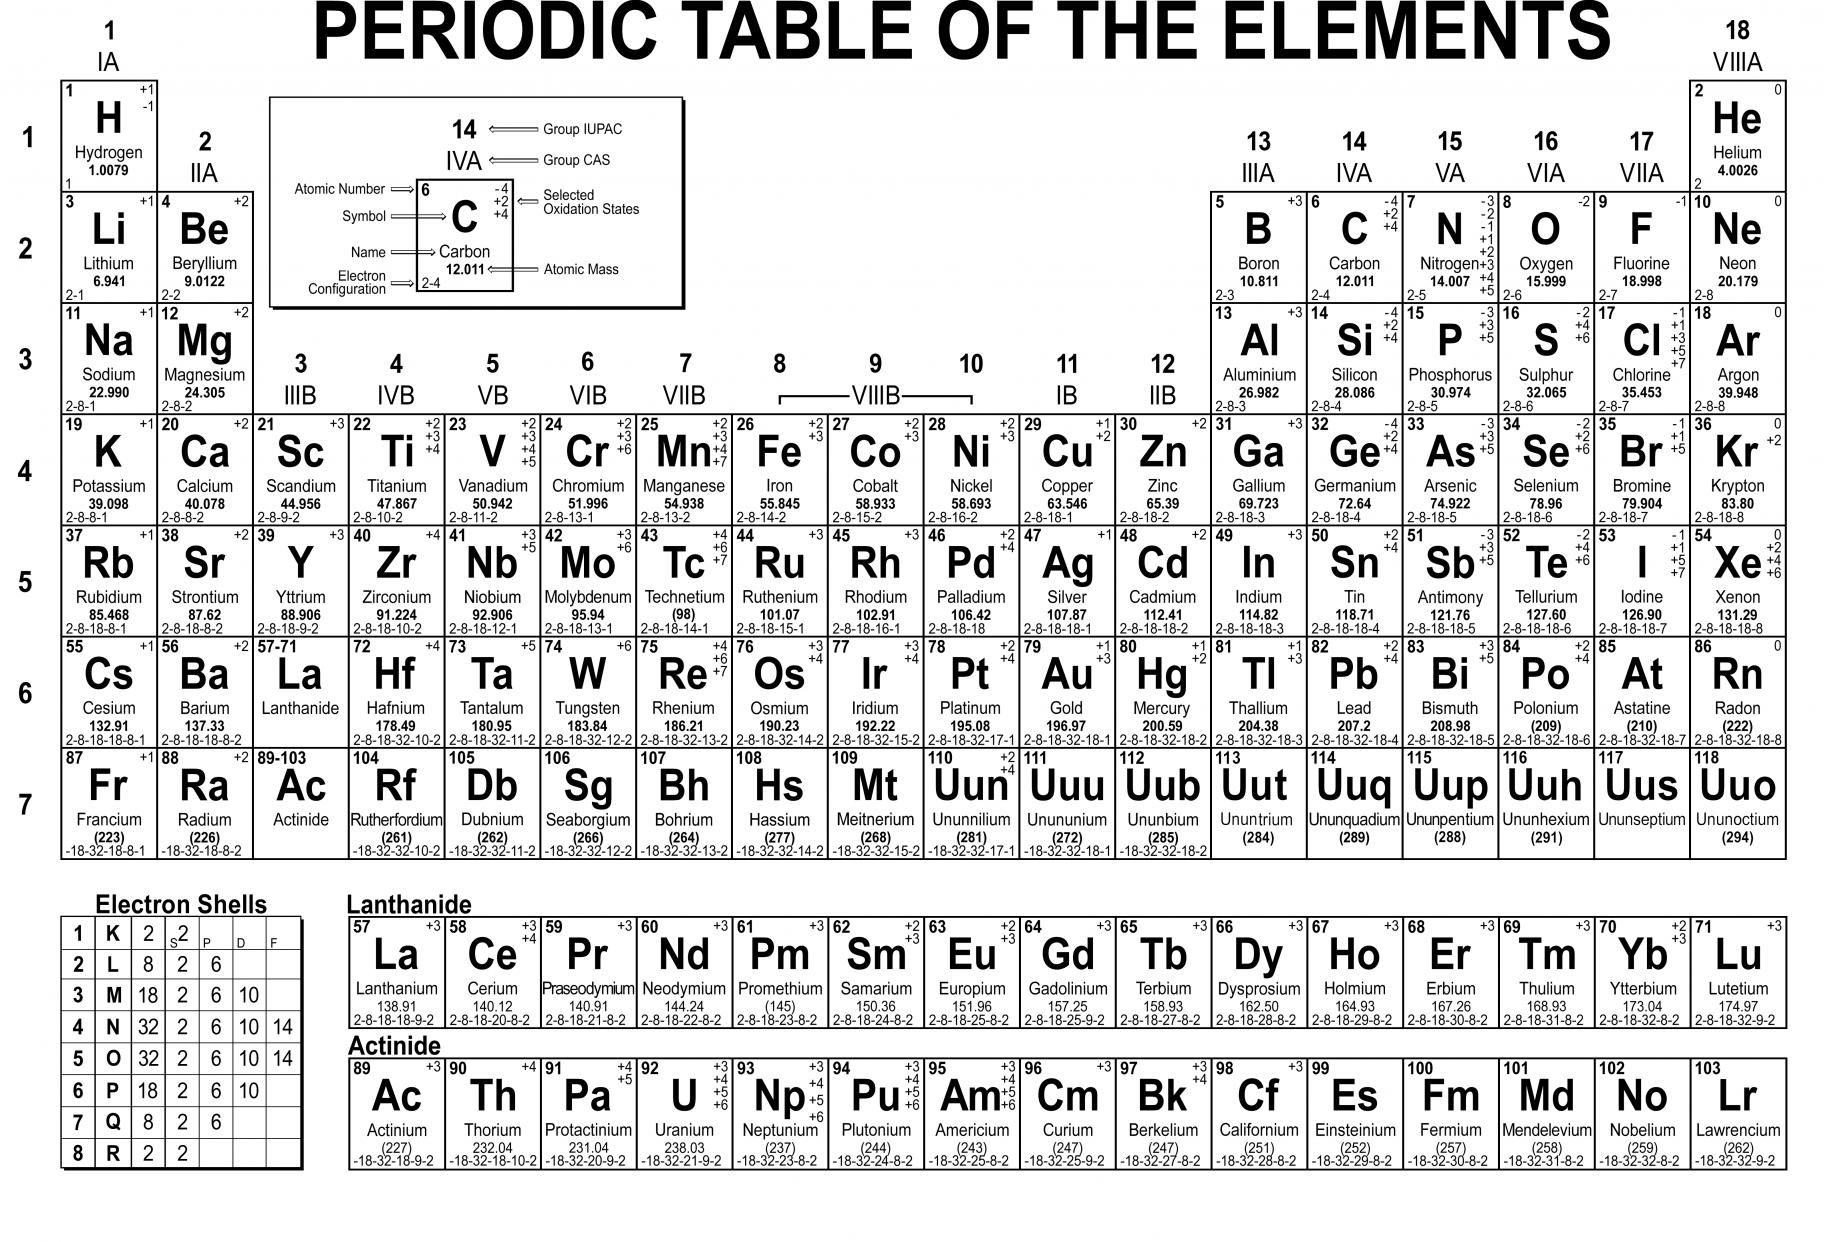 Chemistry regents periodic table google search chemistry pics chemistry regents periodic table google search gamestrikefo Images